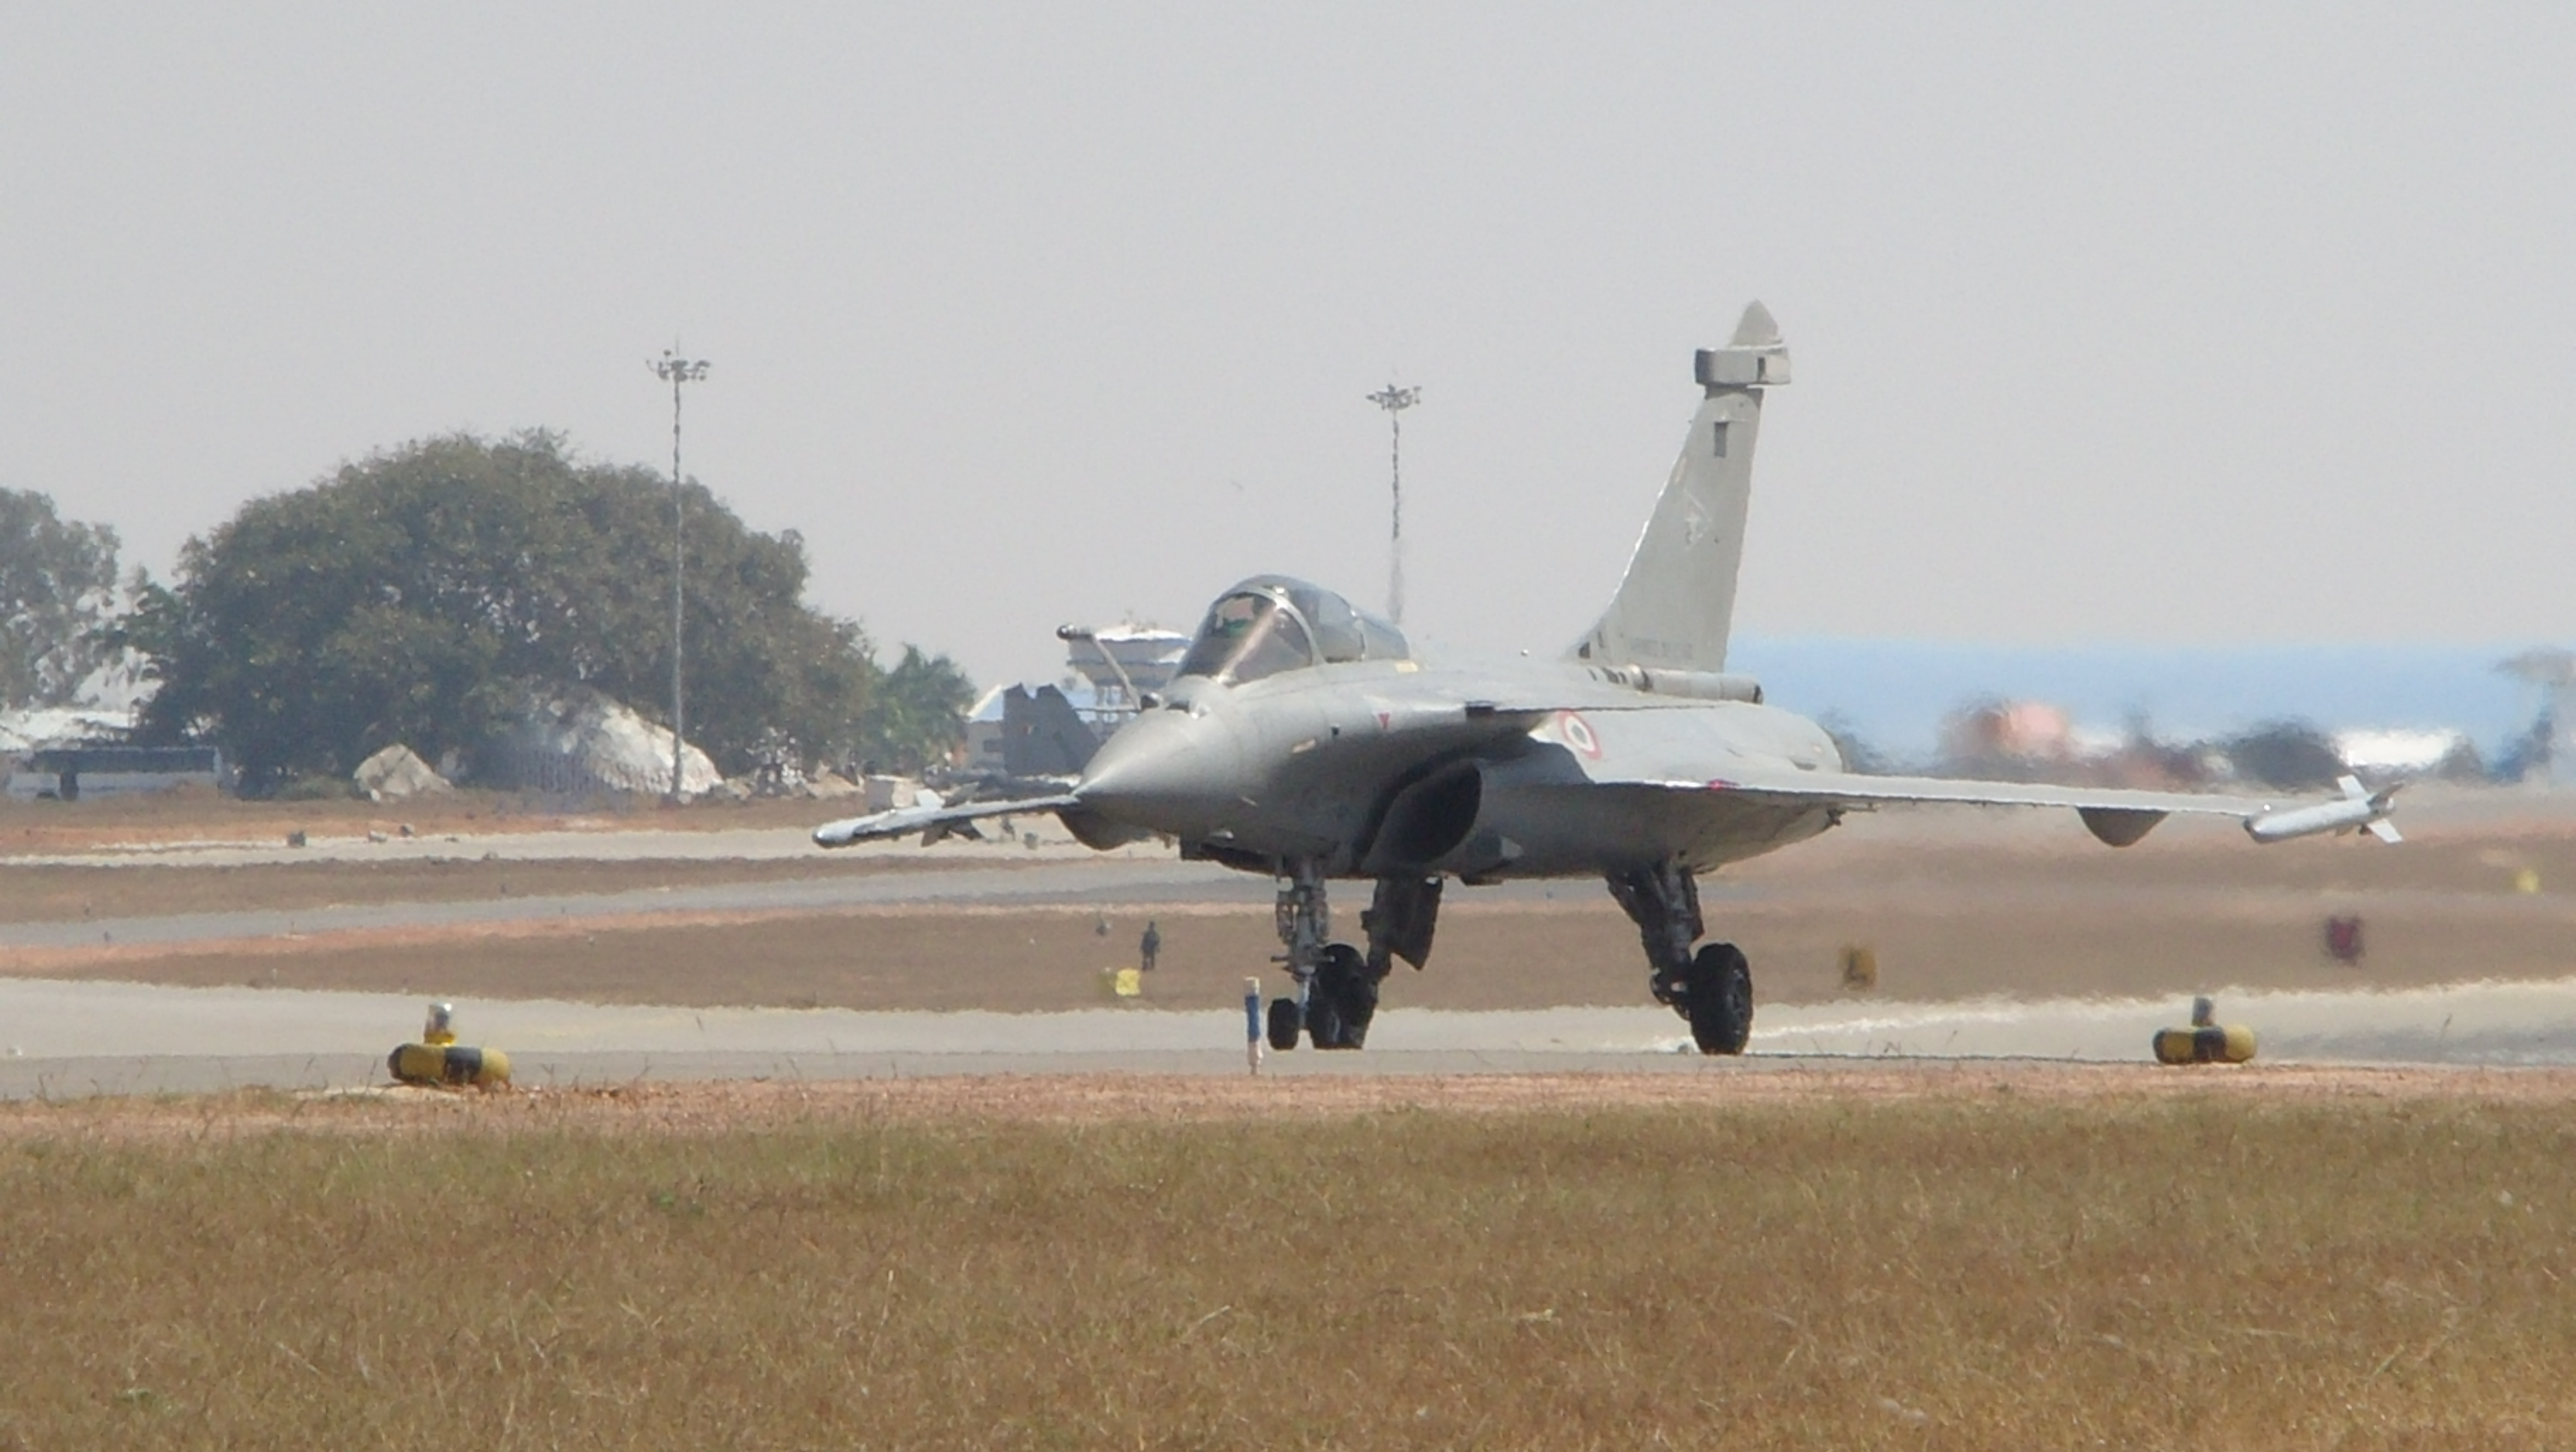 File:Dassault Rafale Taxies to the runway at Aero India 2011 (8th edition of Aero India).jpg - Wikimedia Commons